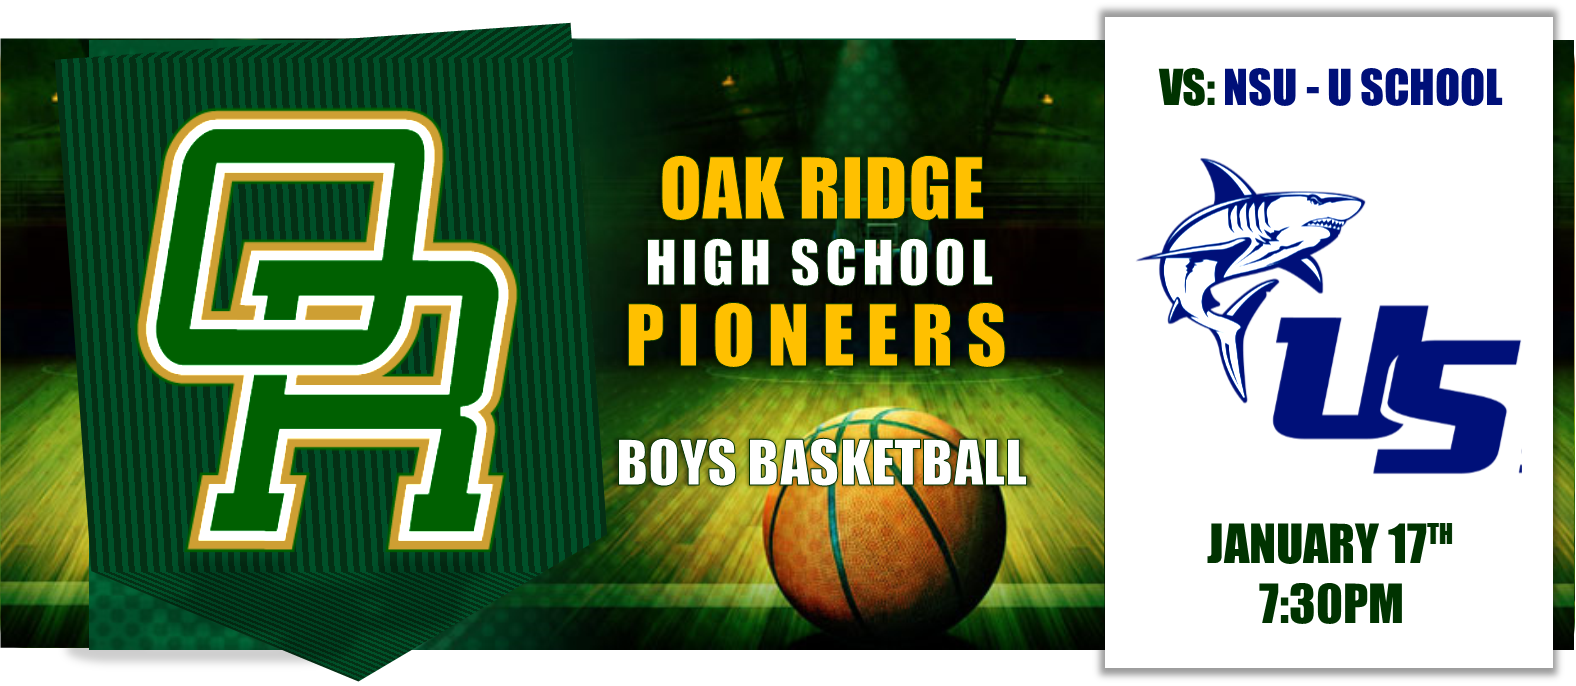 BOYS BASKETBALL HOSTS #1 TEAM IN THE STATE